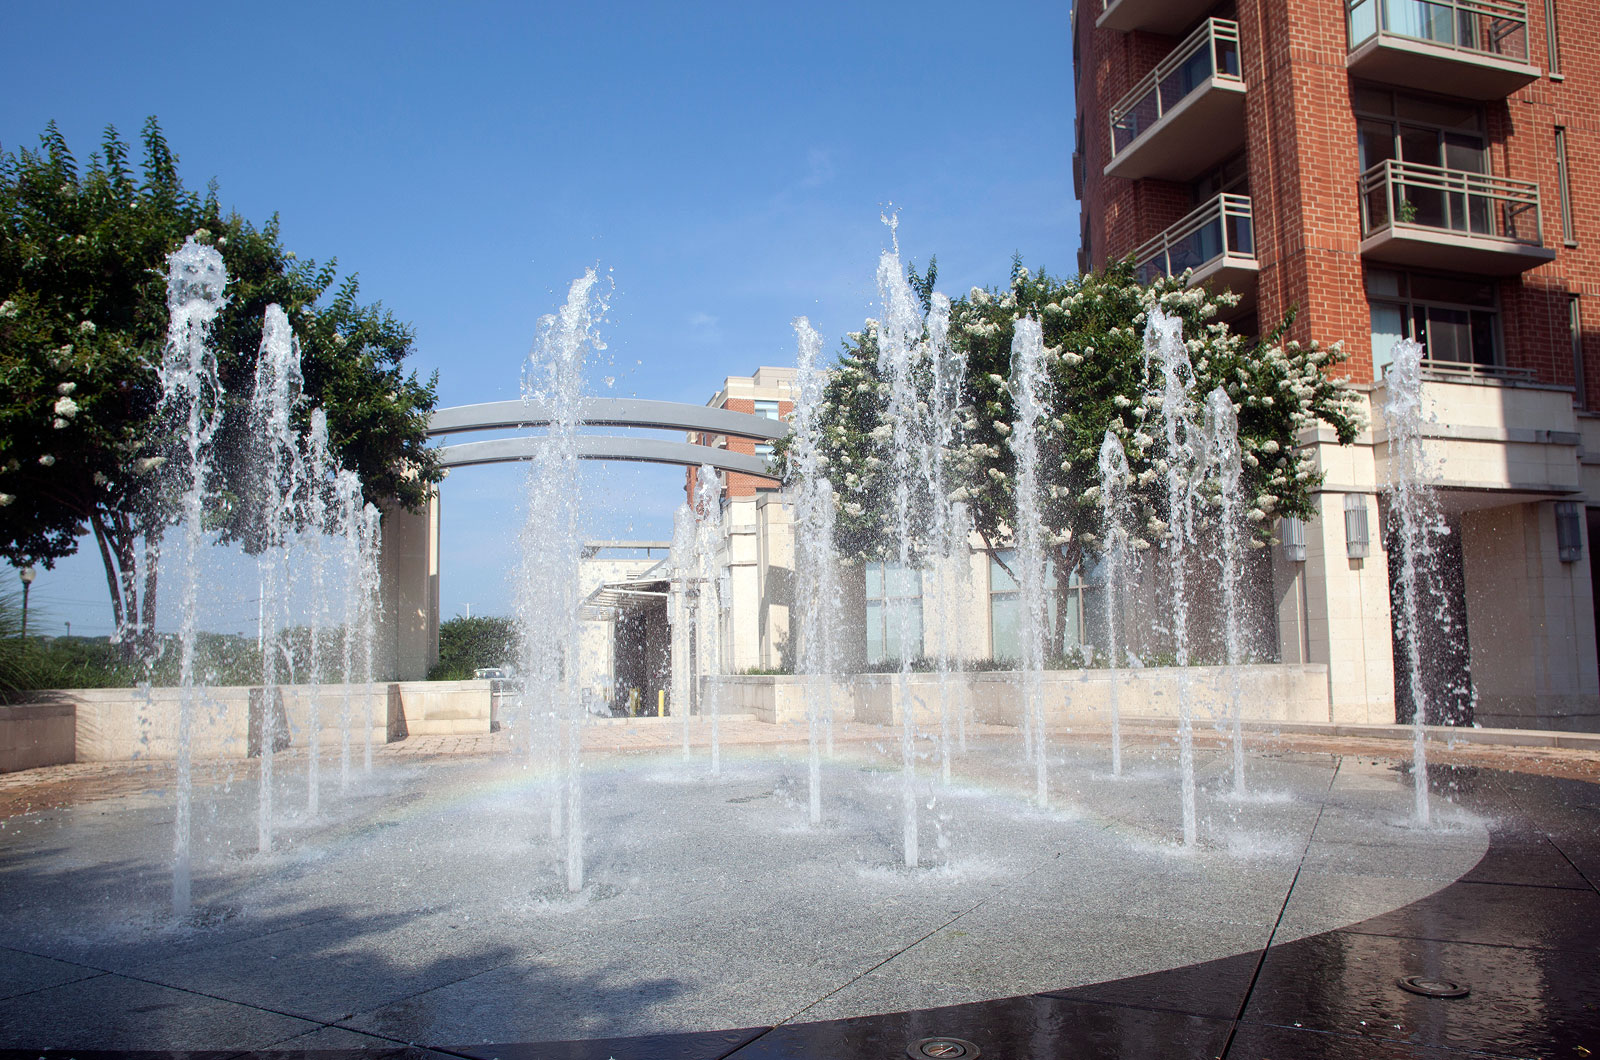 Fountain Construction And Maintenance